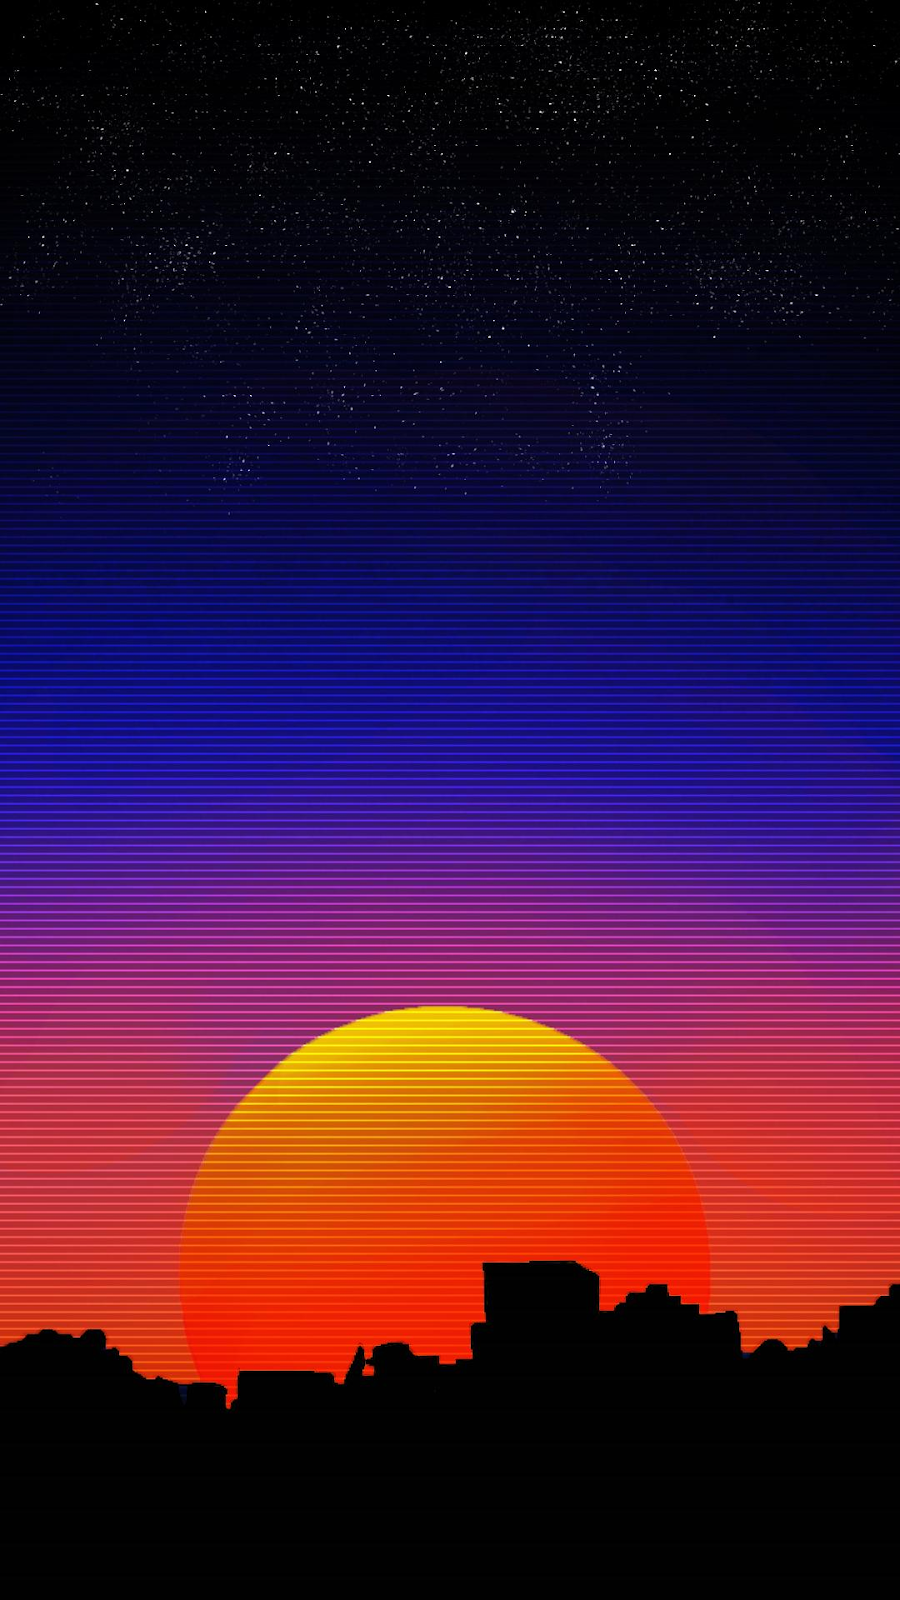 sunset vaporwave